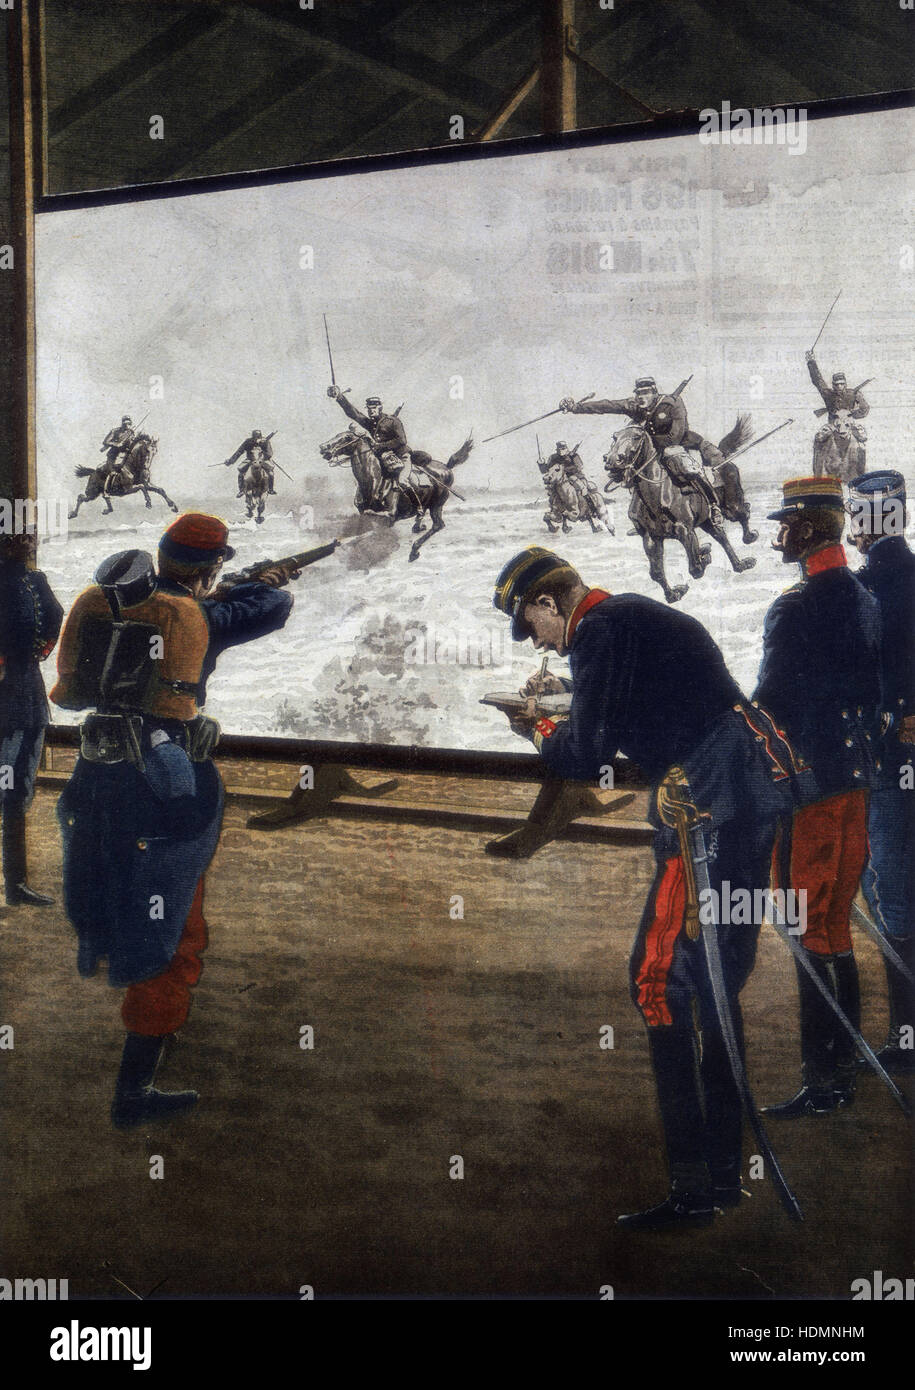 'Le Petit Journal', (Paris, 30 June 1912) - French soldiers using film of a cavalry charge for rifle practice - Stock Image